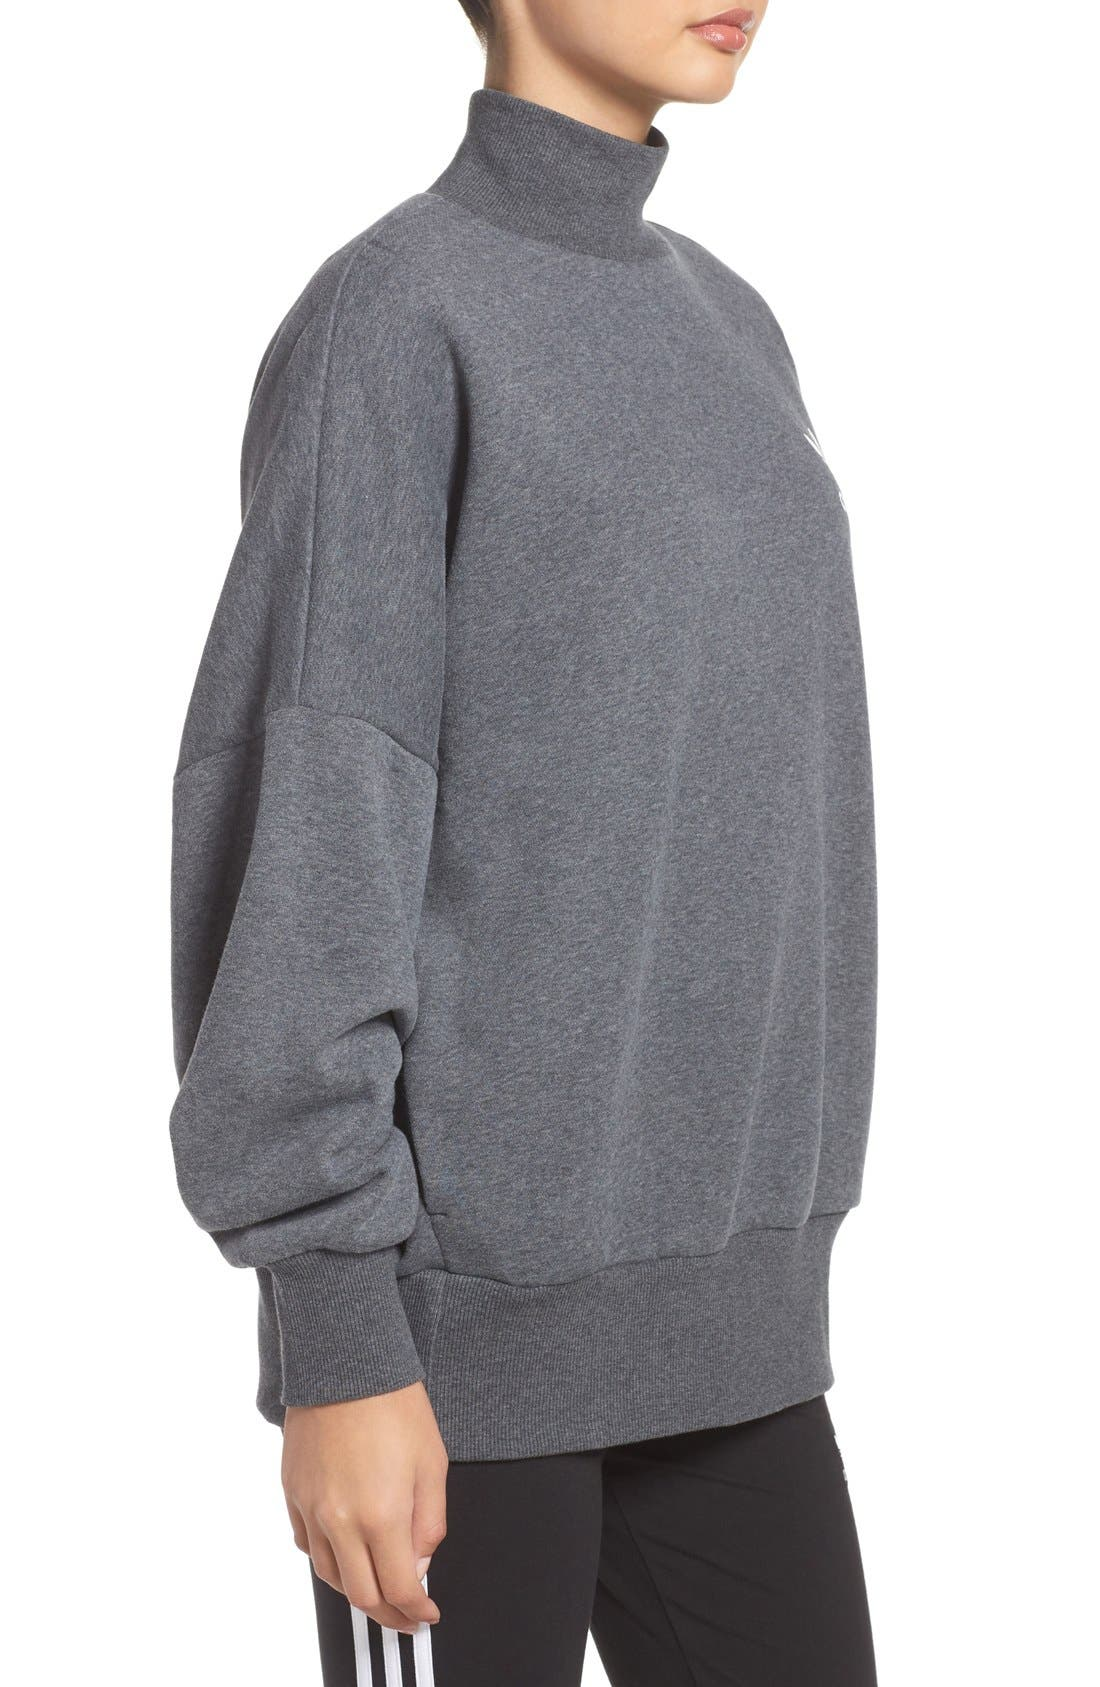 Alternate Image 3  - adidas Originals Mock Neck Sweatshirt